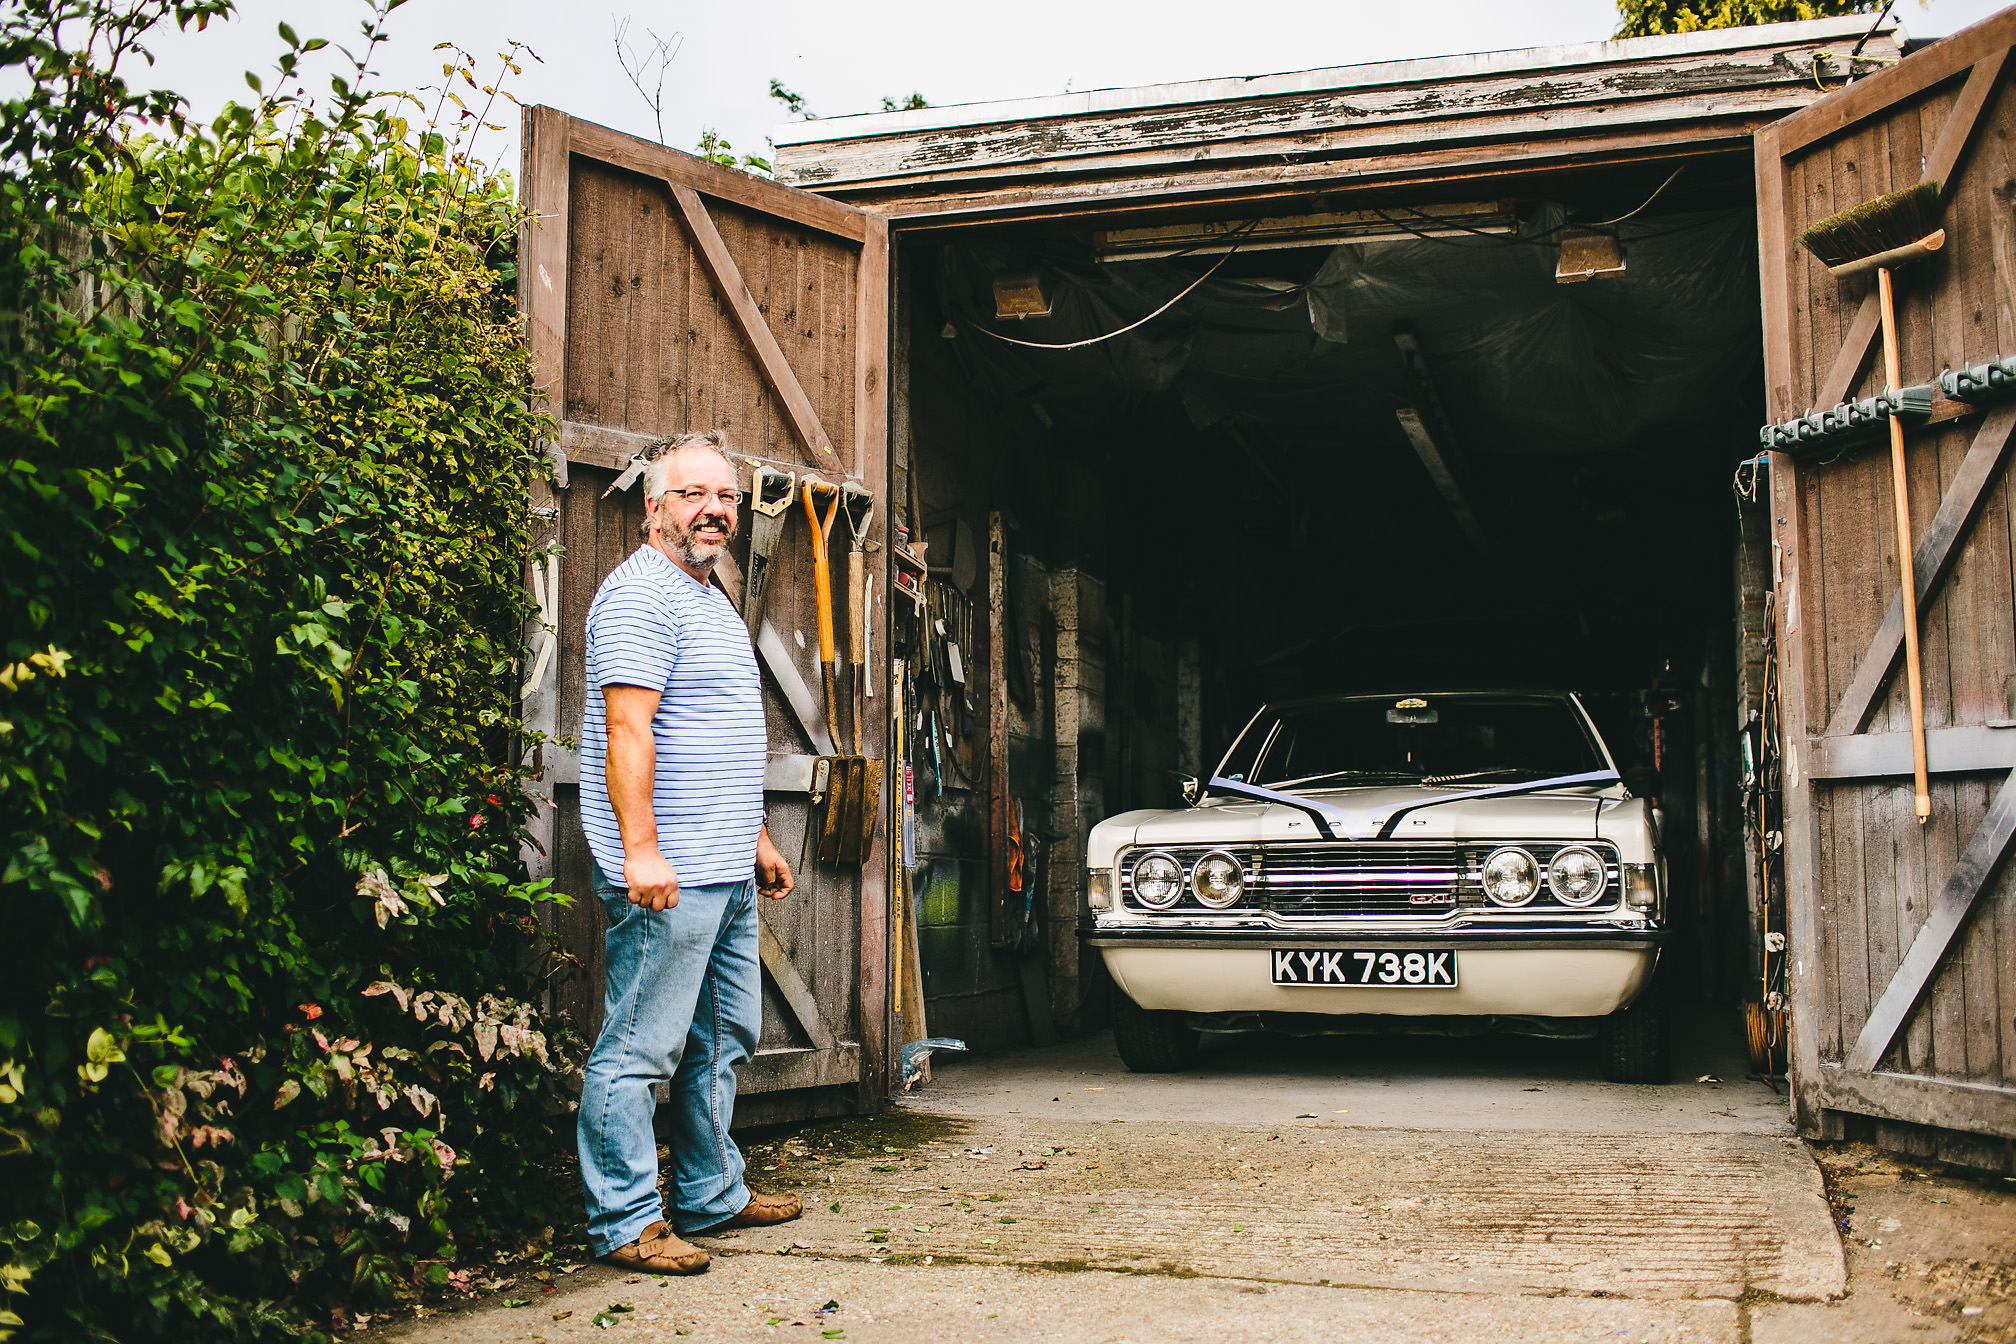 Father of the Bride shows off his wedding car